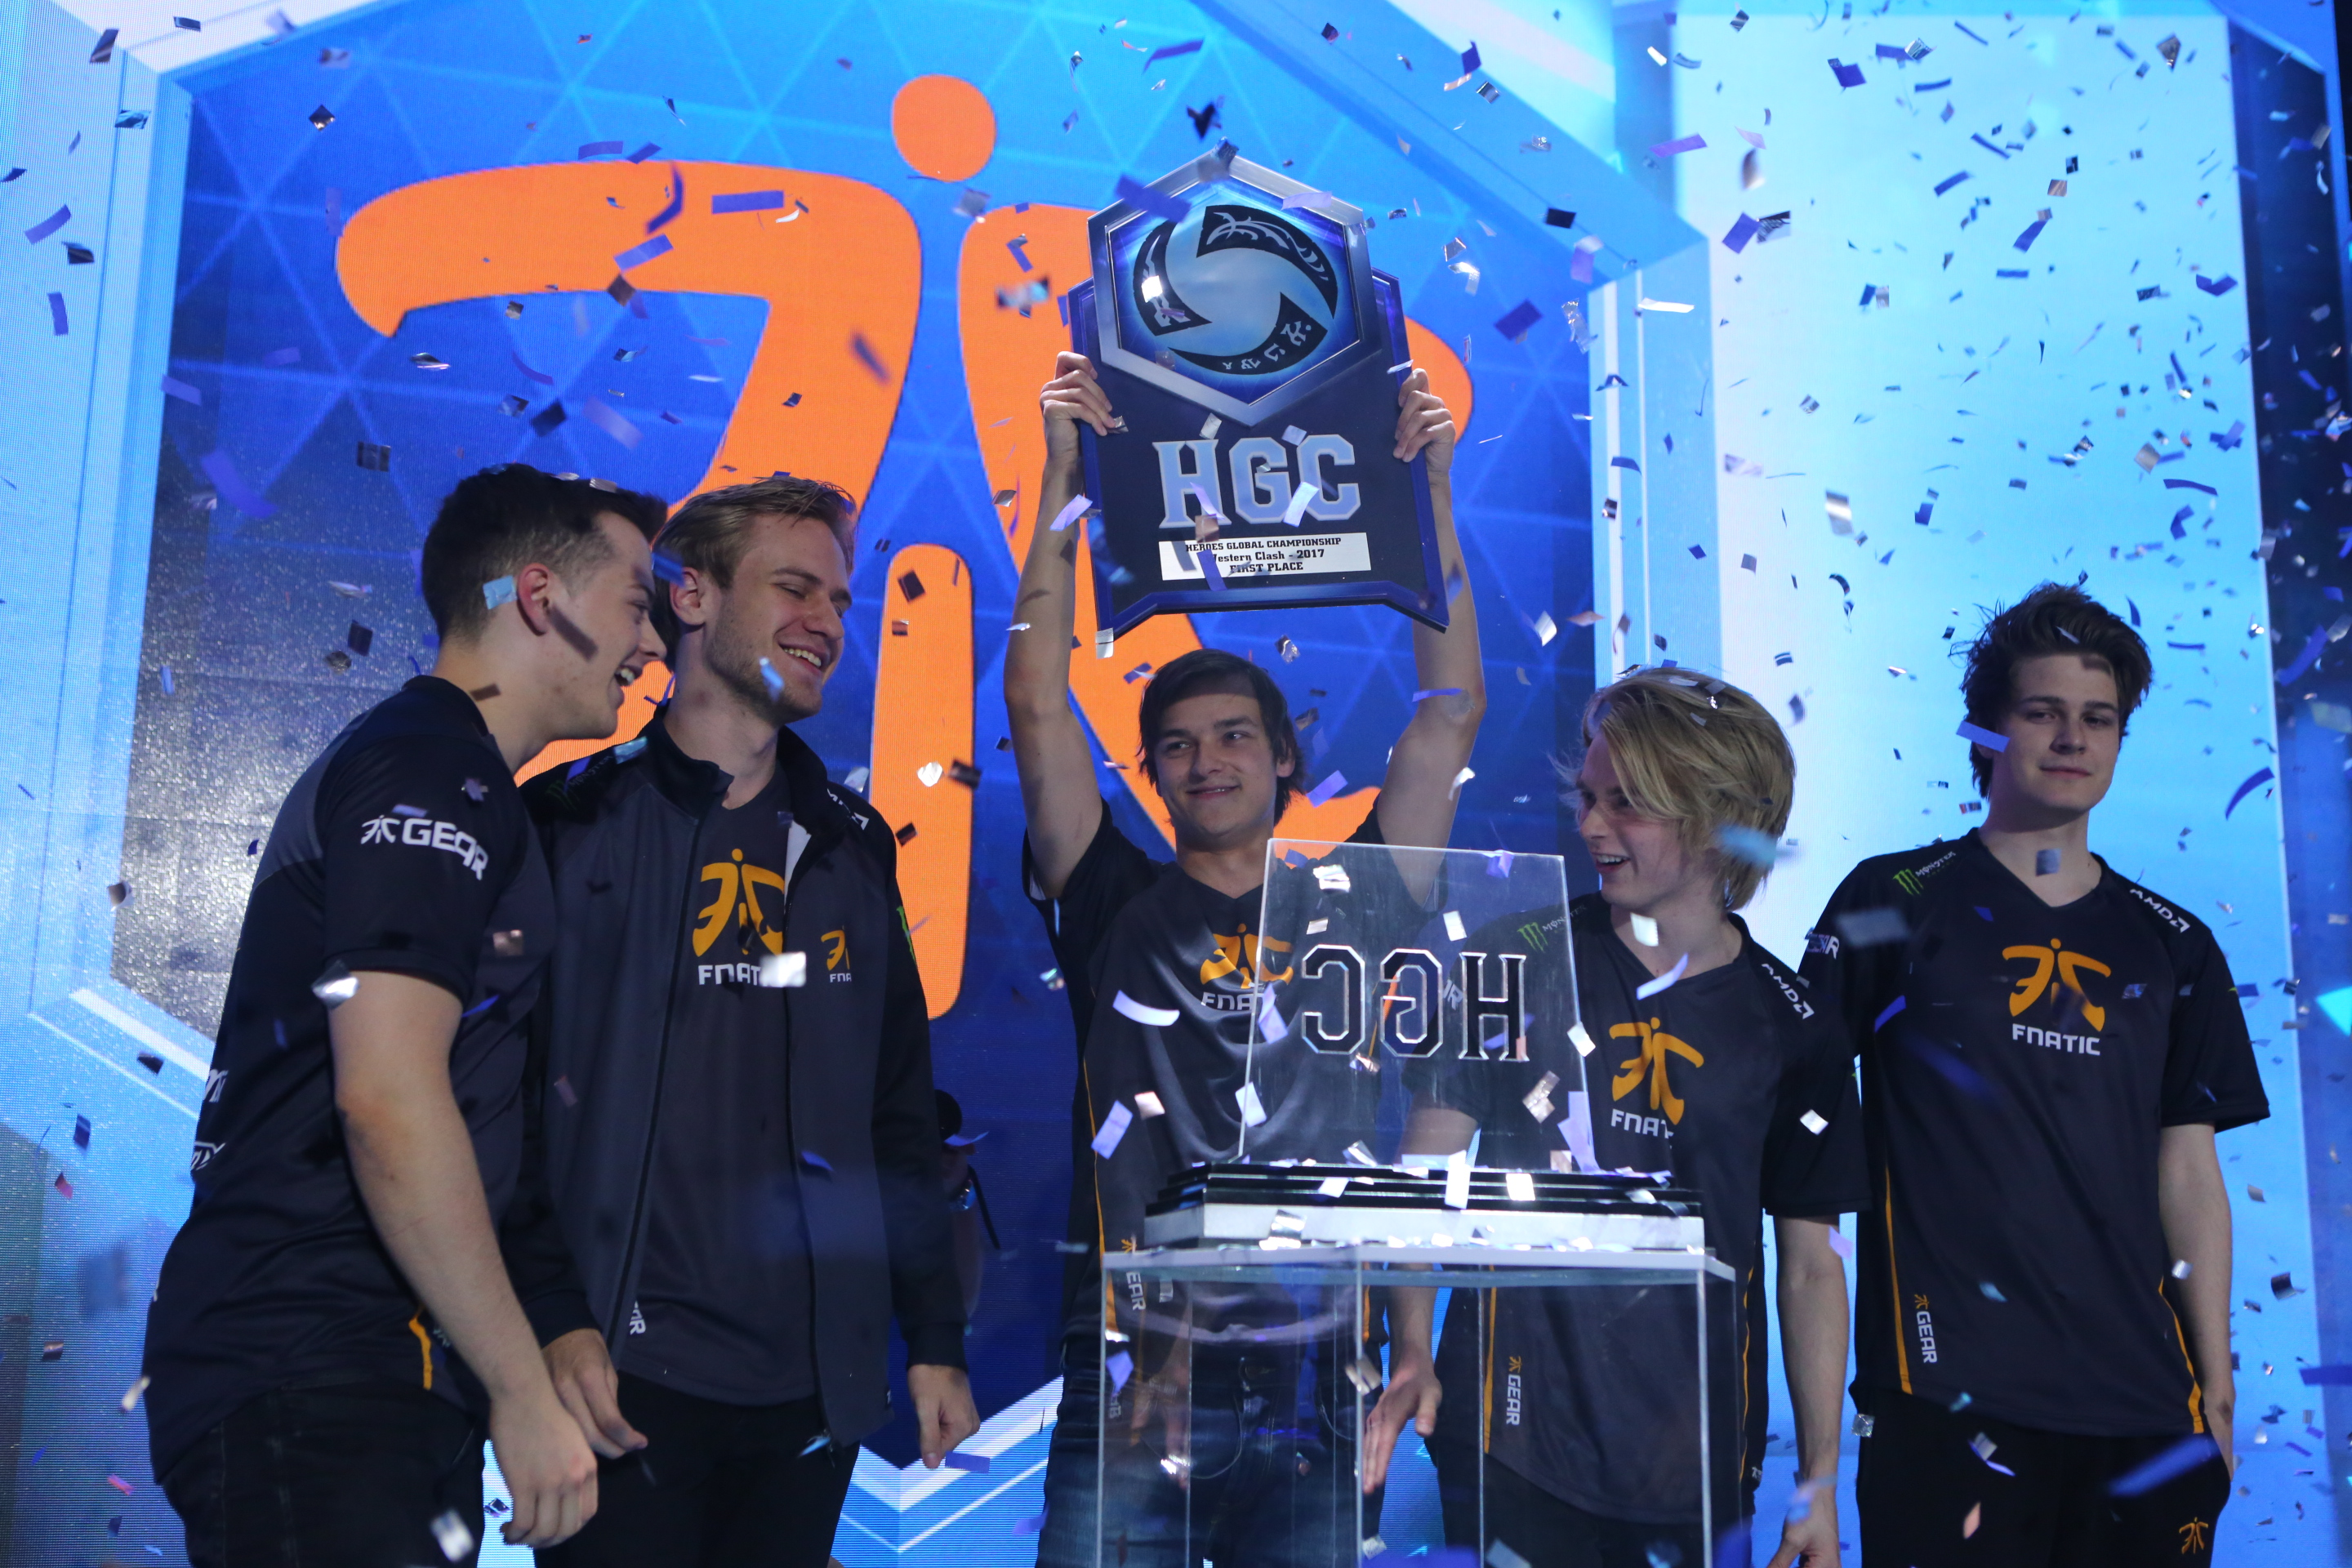 Fnatic champions of the Western Clash HGC